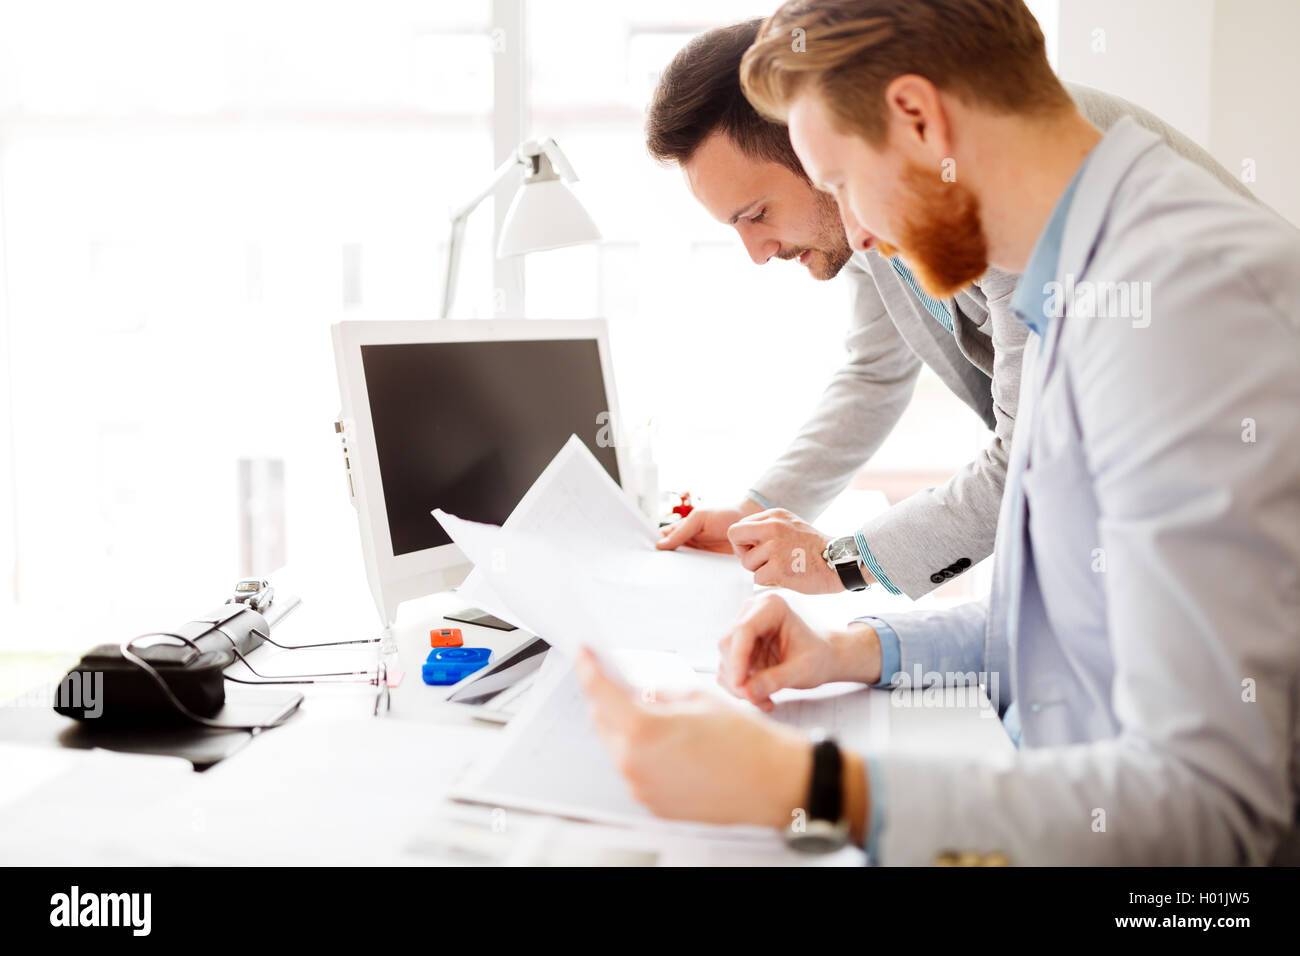 Colleagues working in office and brainstorming - Stock Image